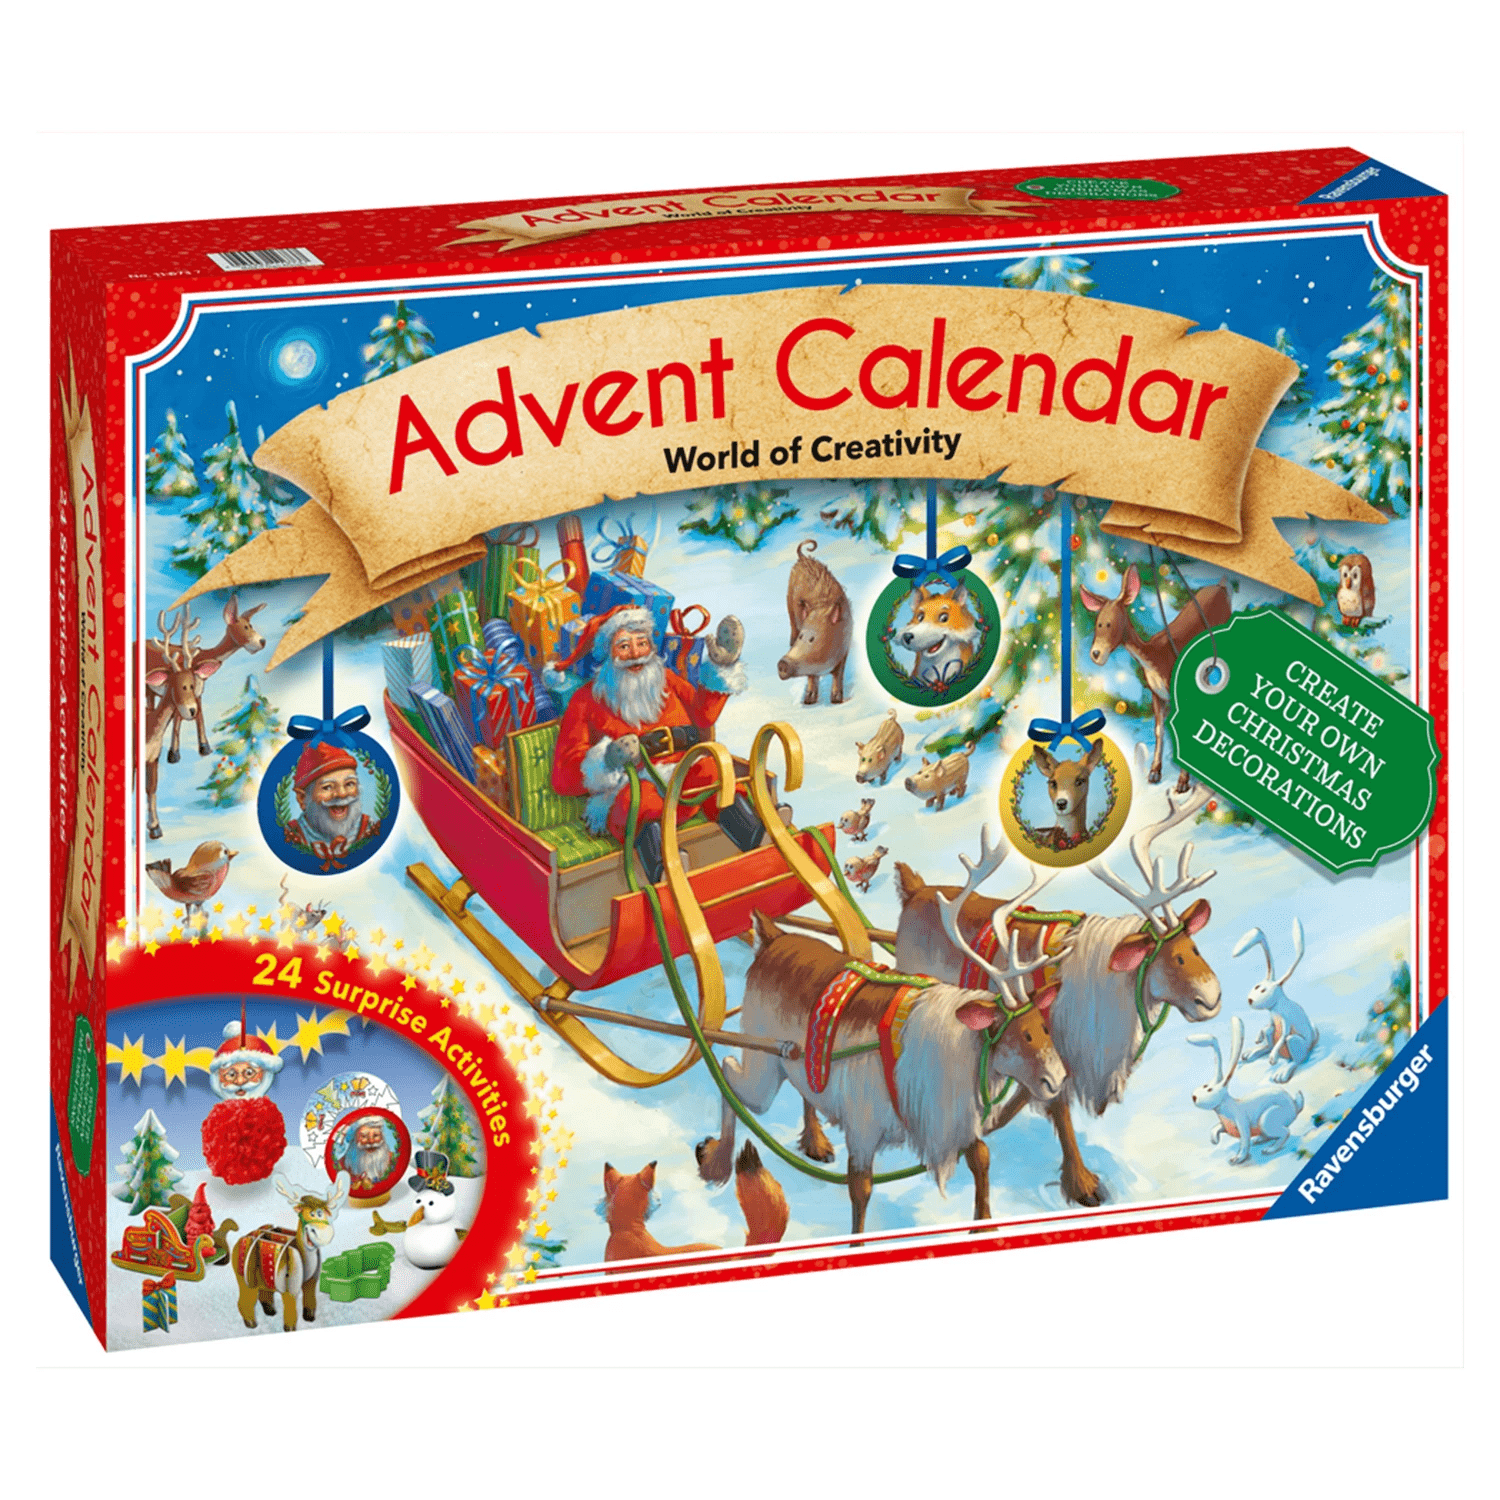 World of Creativity Advent Calendar 2018 Available Now!